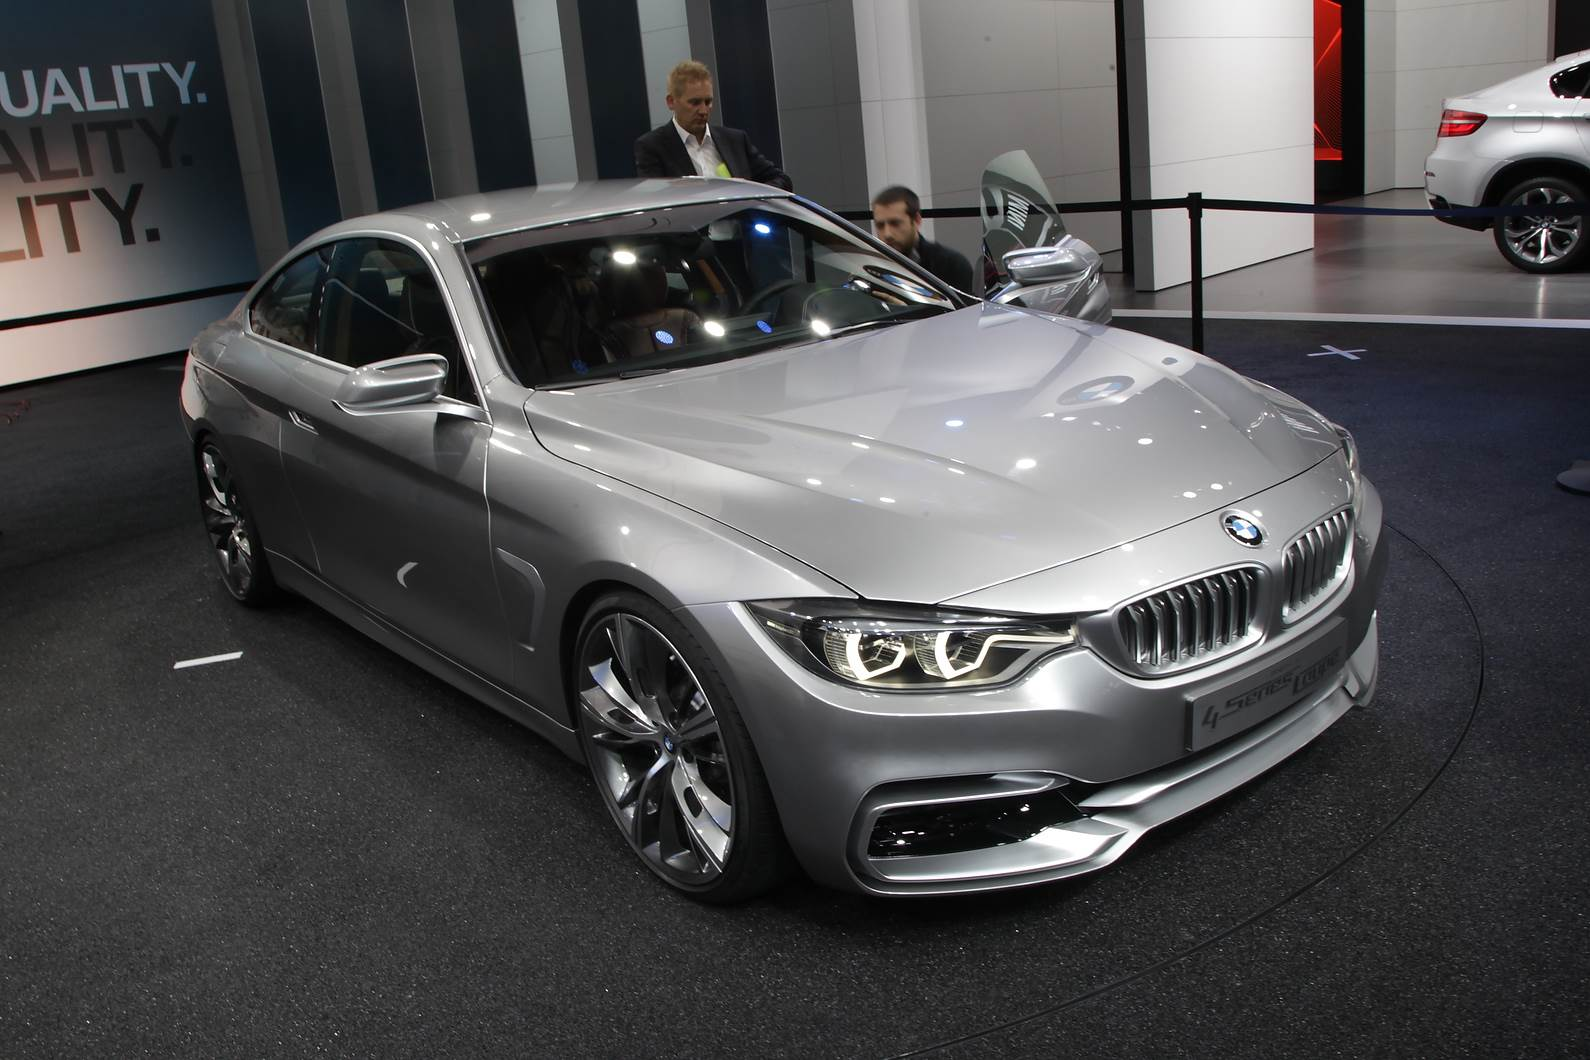 BMW 4-series Coupe concept showcased